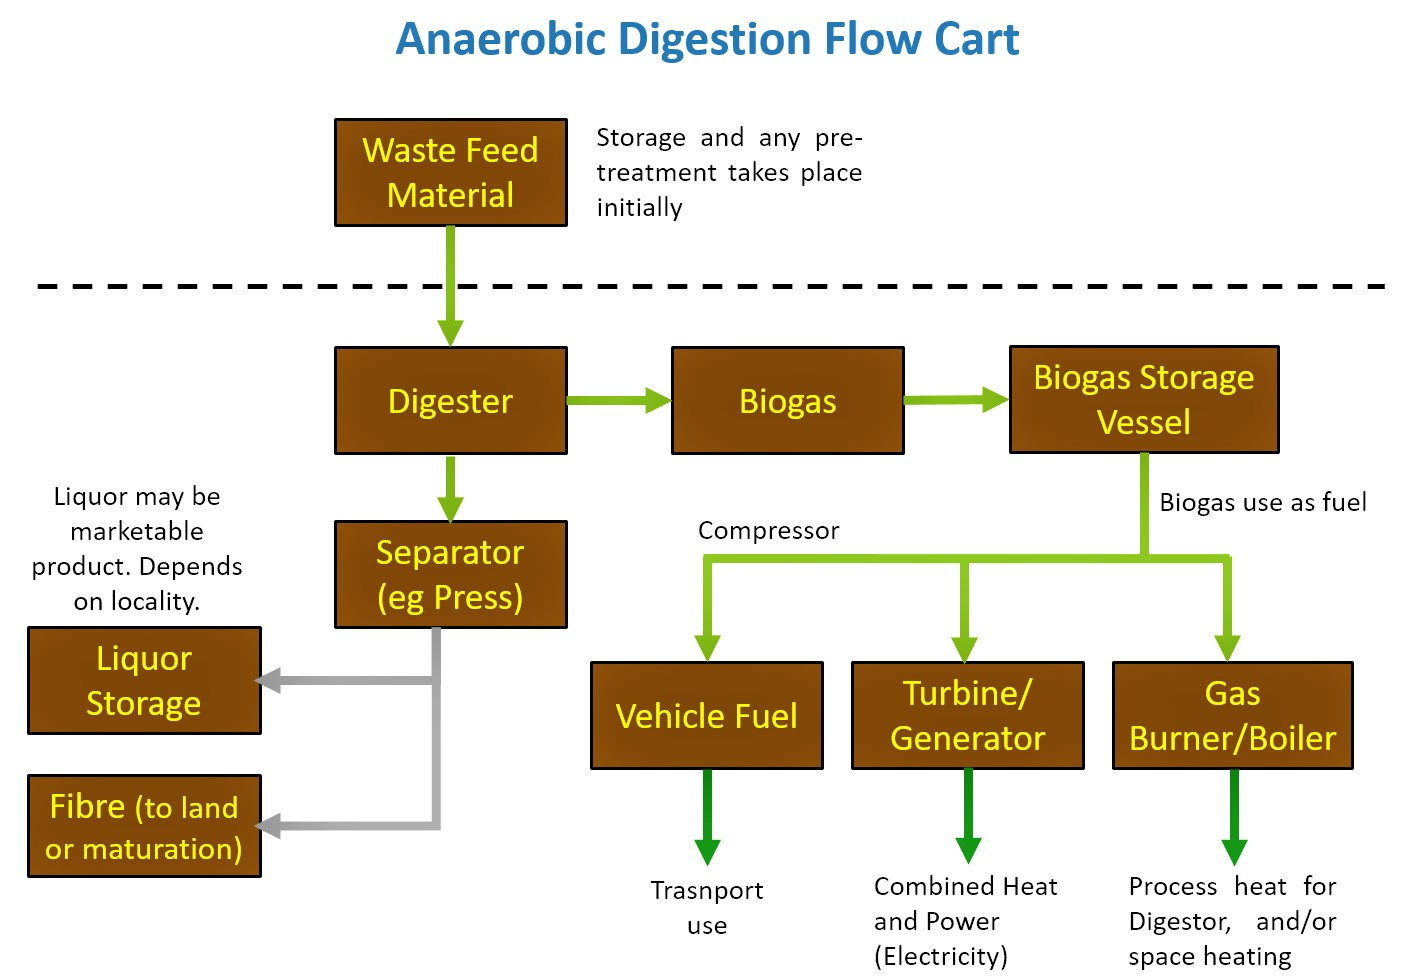 Anaerobic digestion as a means to produce green energy and fertiliser. Source: ANAEROBIC-DIGESTION (2010)